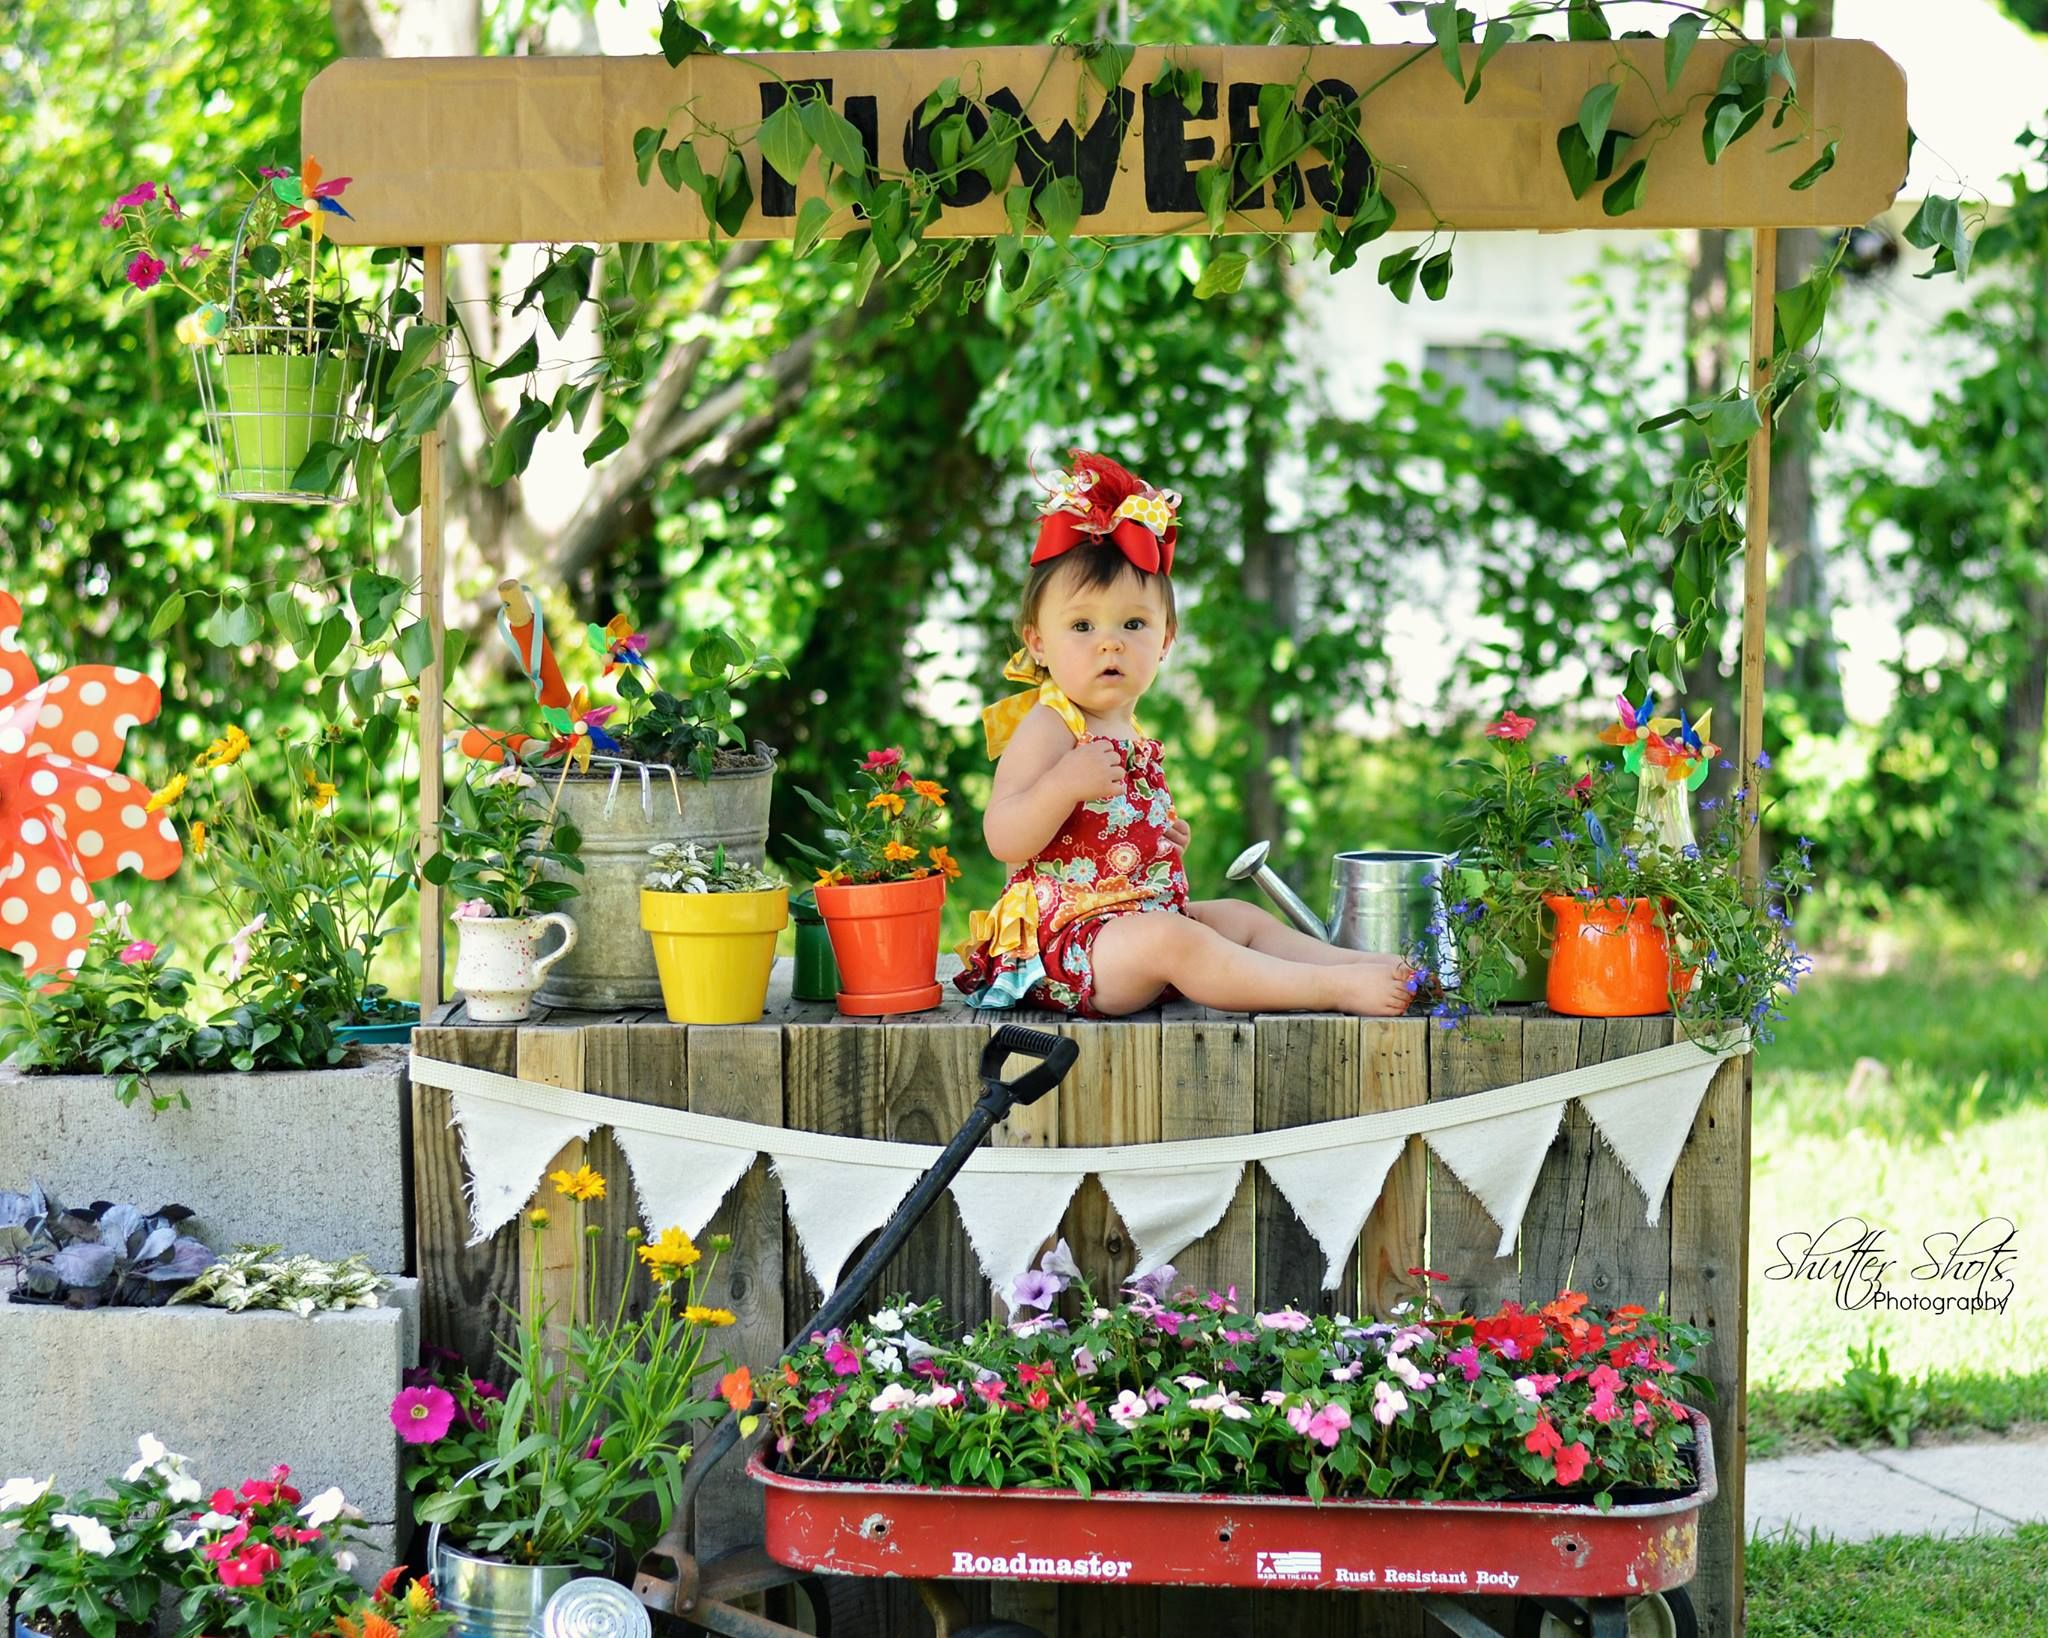 Great idea for spring mini sessions!